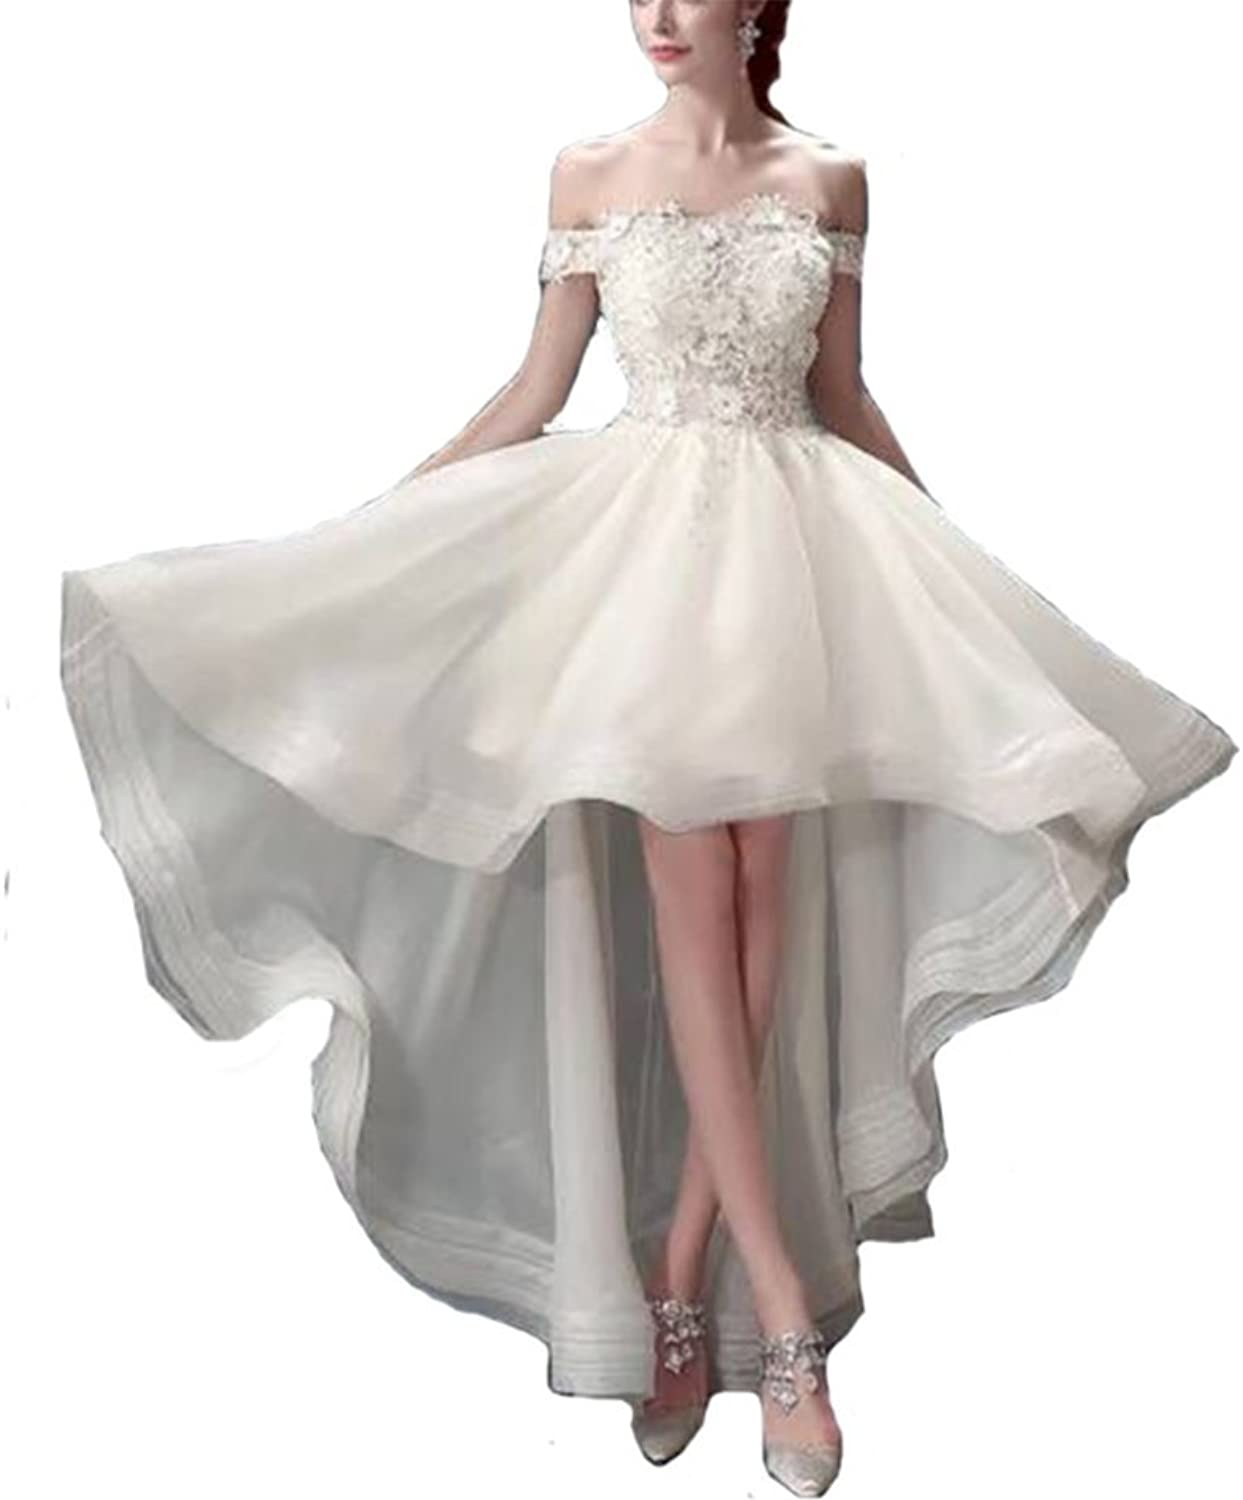 FWVR Women's HiLo Wedding Dresses for Bride 2018 Off Shoudler Lace Bridal Gowns